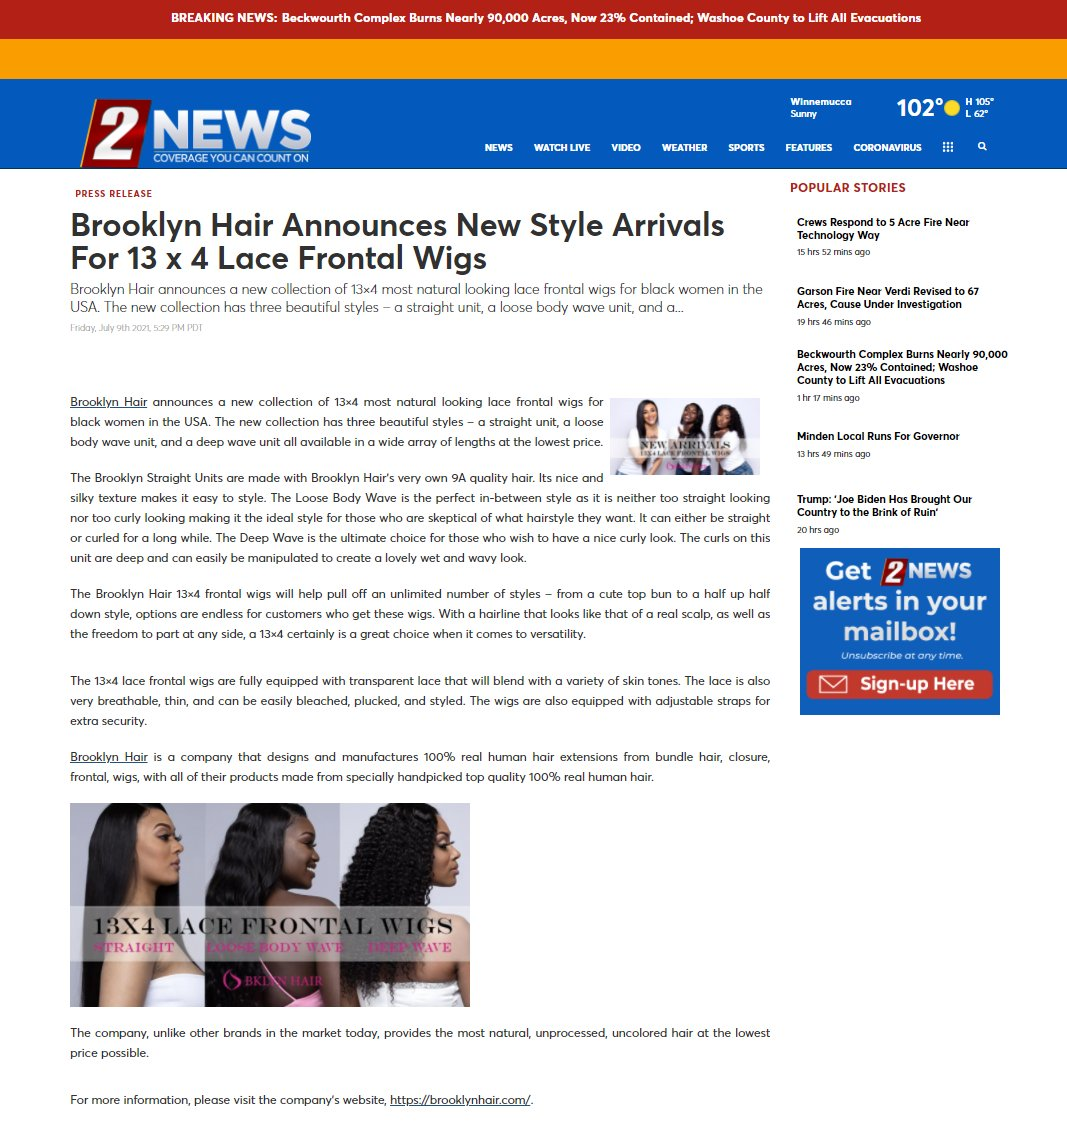 Brooklyn Hair Announces New Style Arrivals For 13 x 4 Lace Frontal Wigs